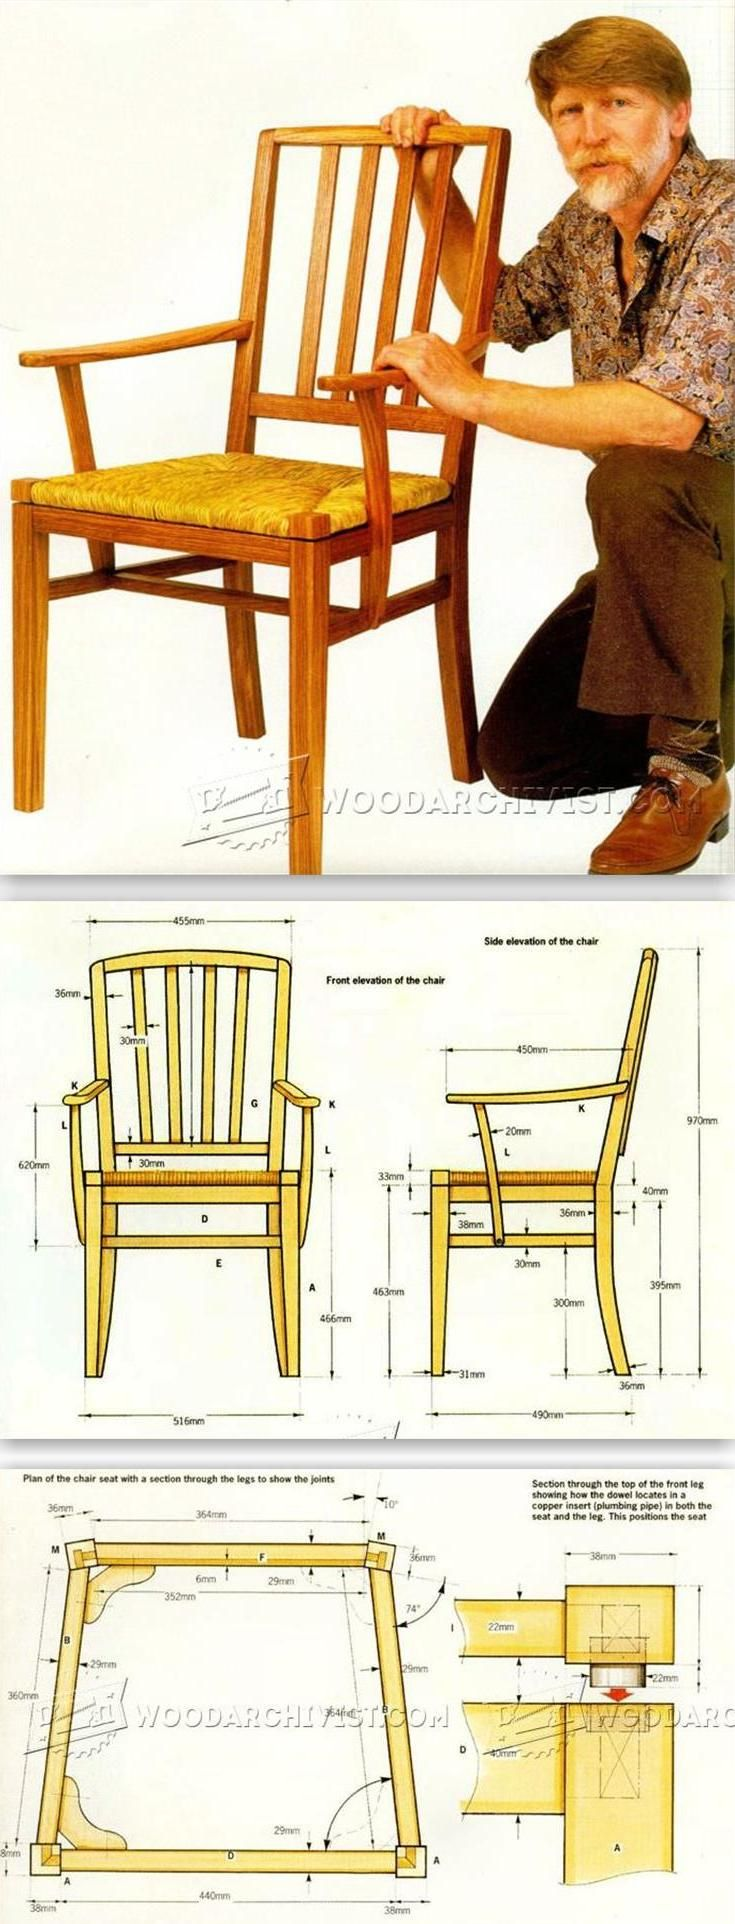 Rush Seat Chair Plans - Furniture Plans and Projects | WoodArchivist.com